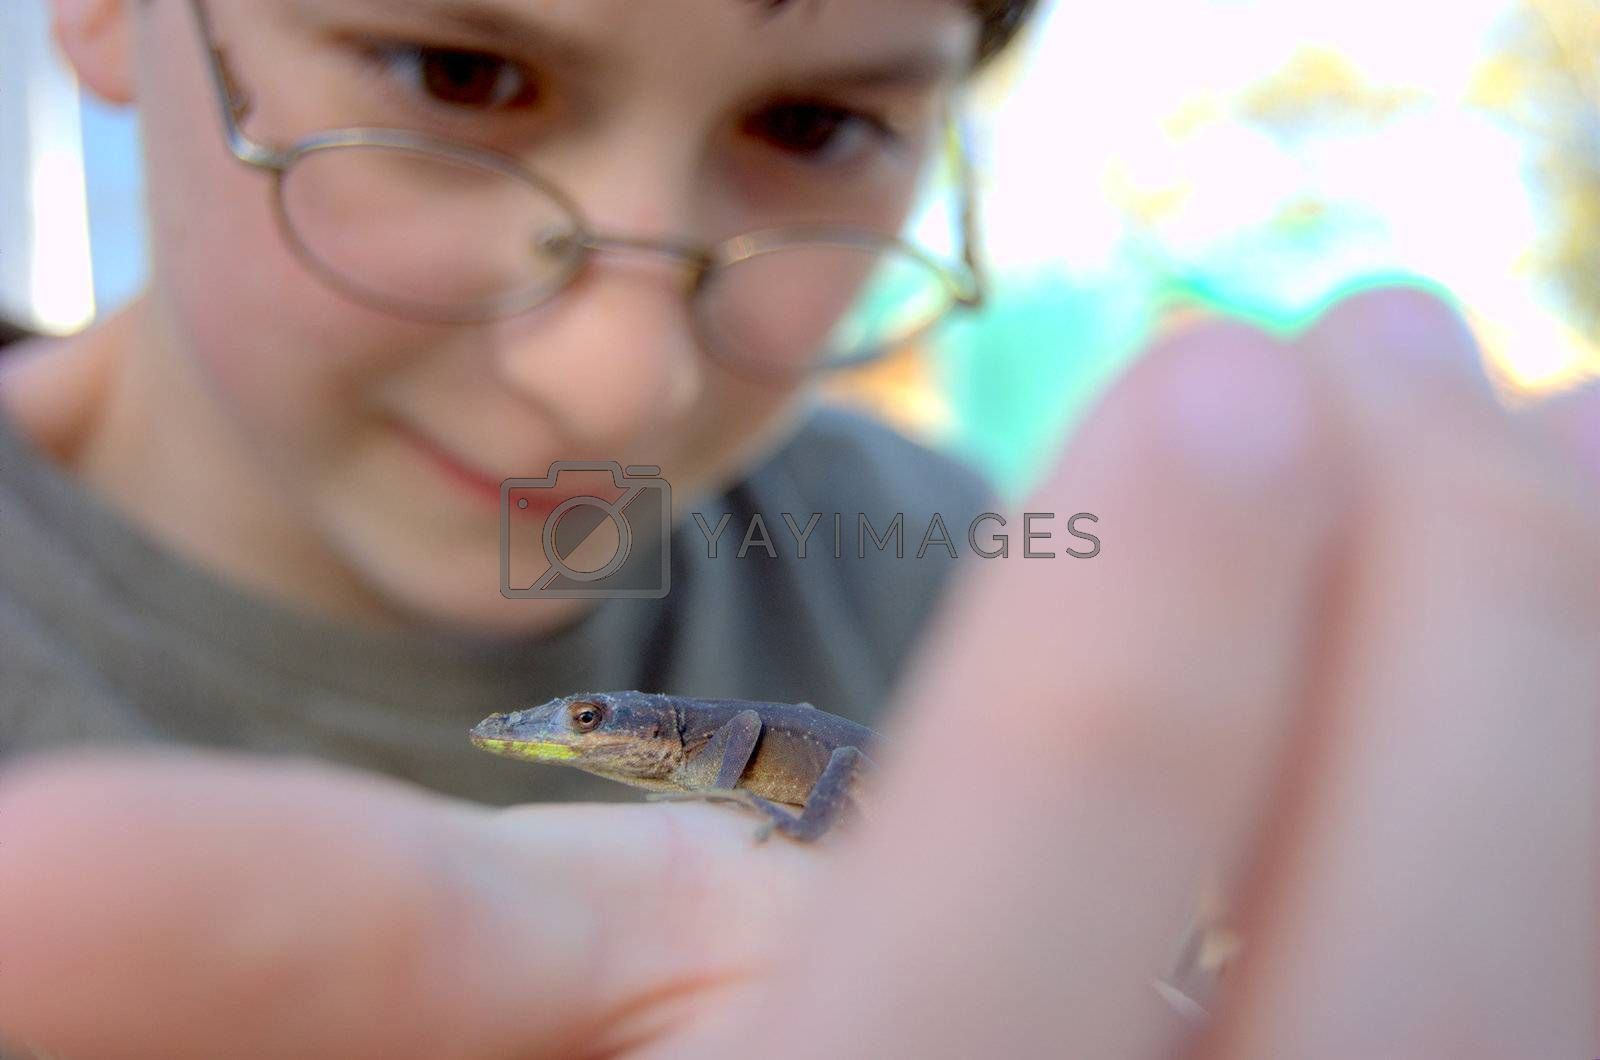 Boy holding lizard in his hand